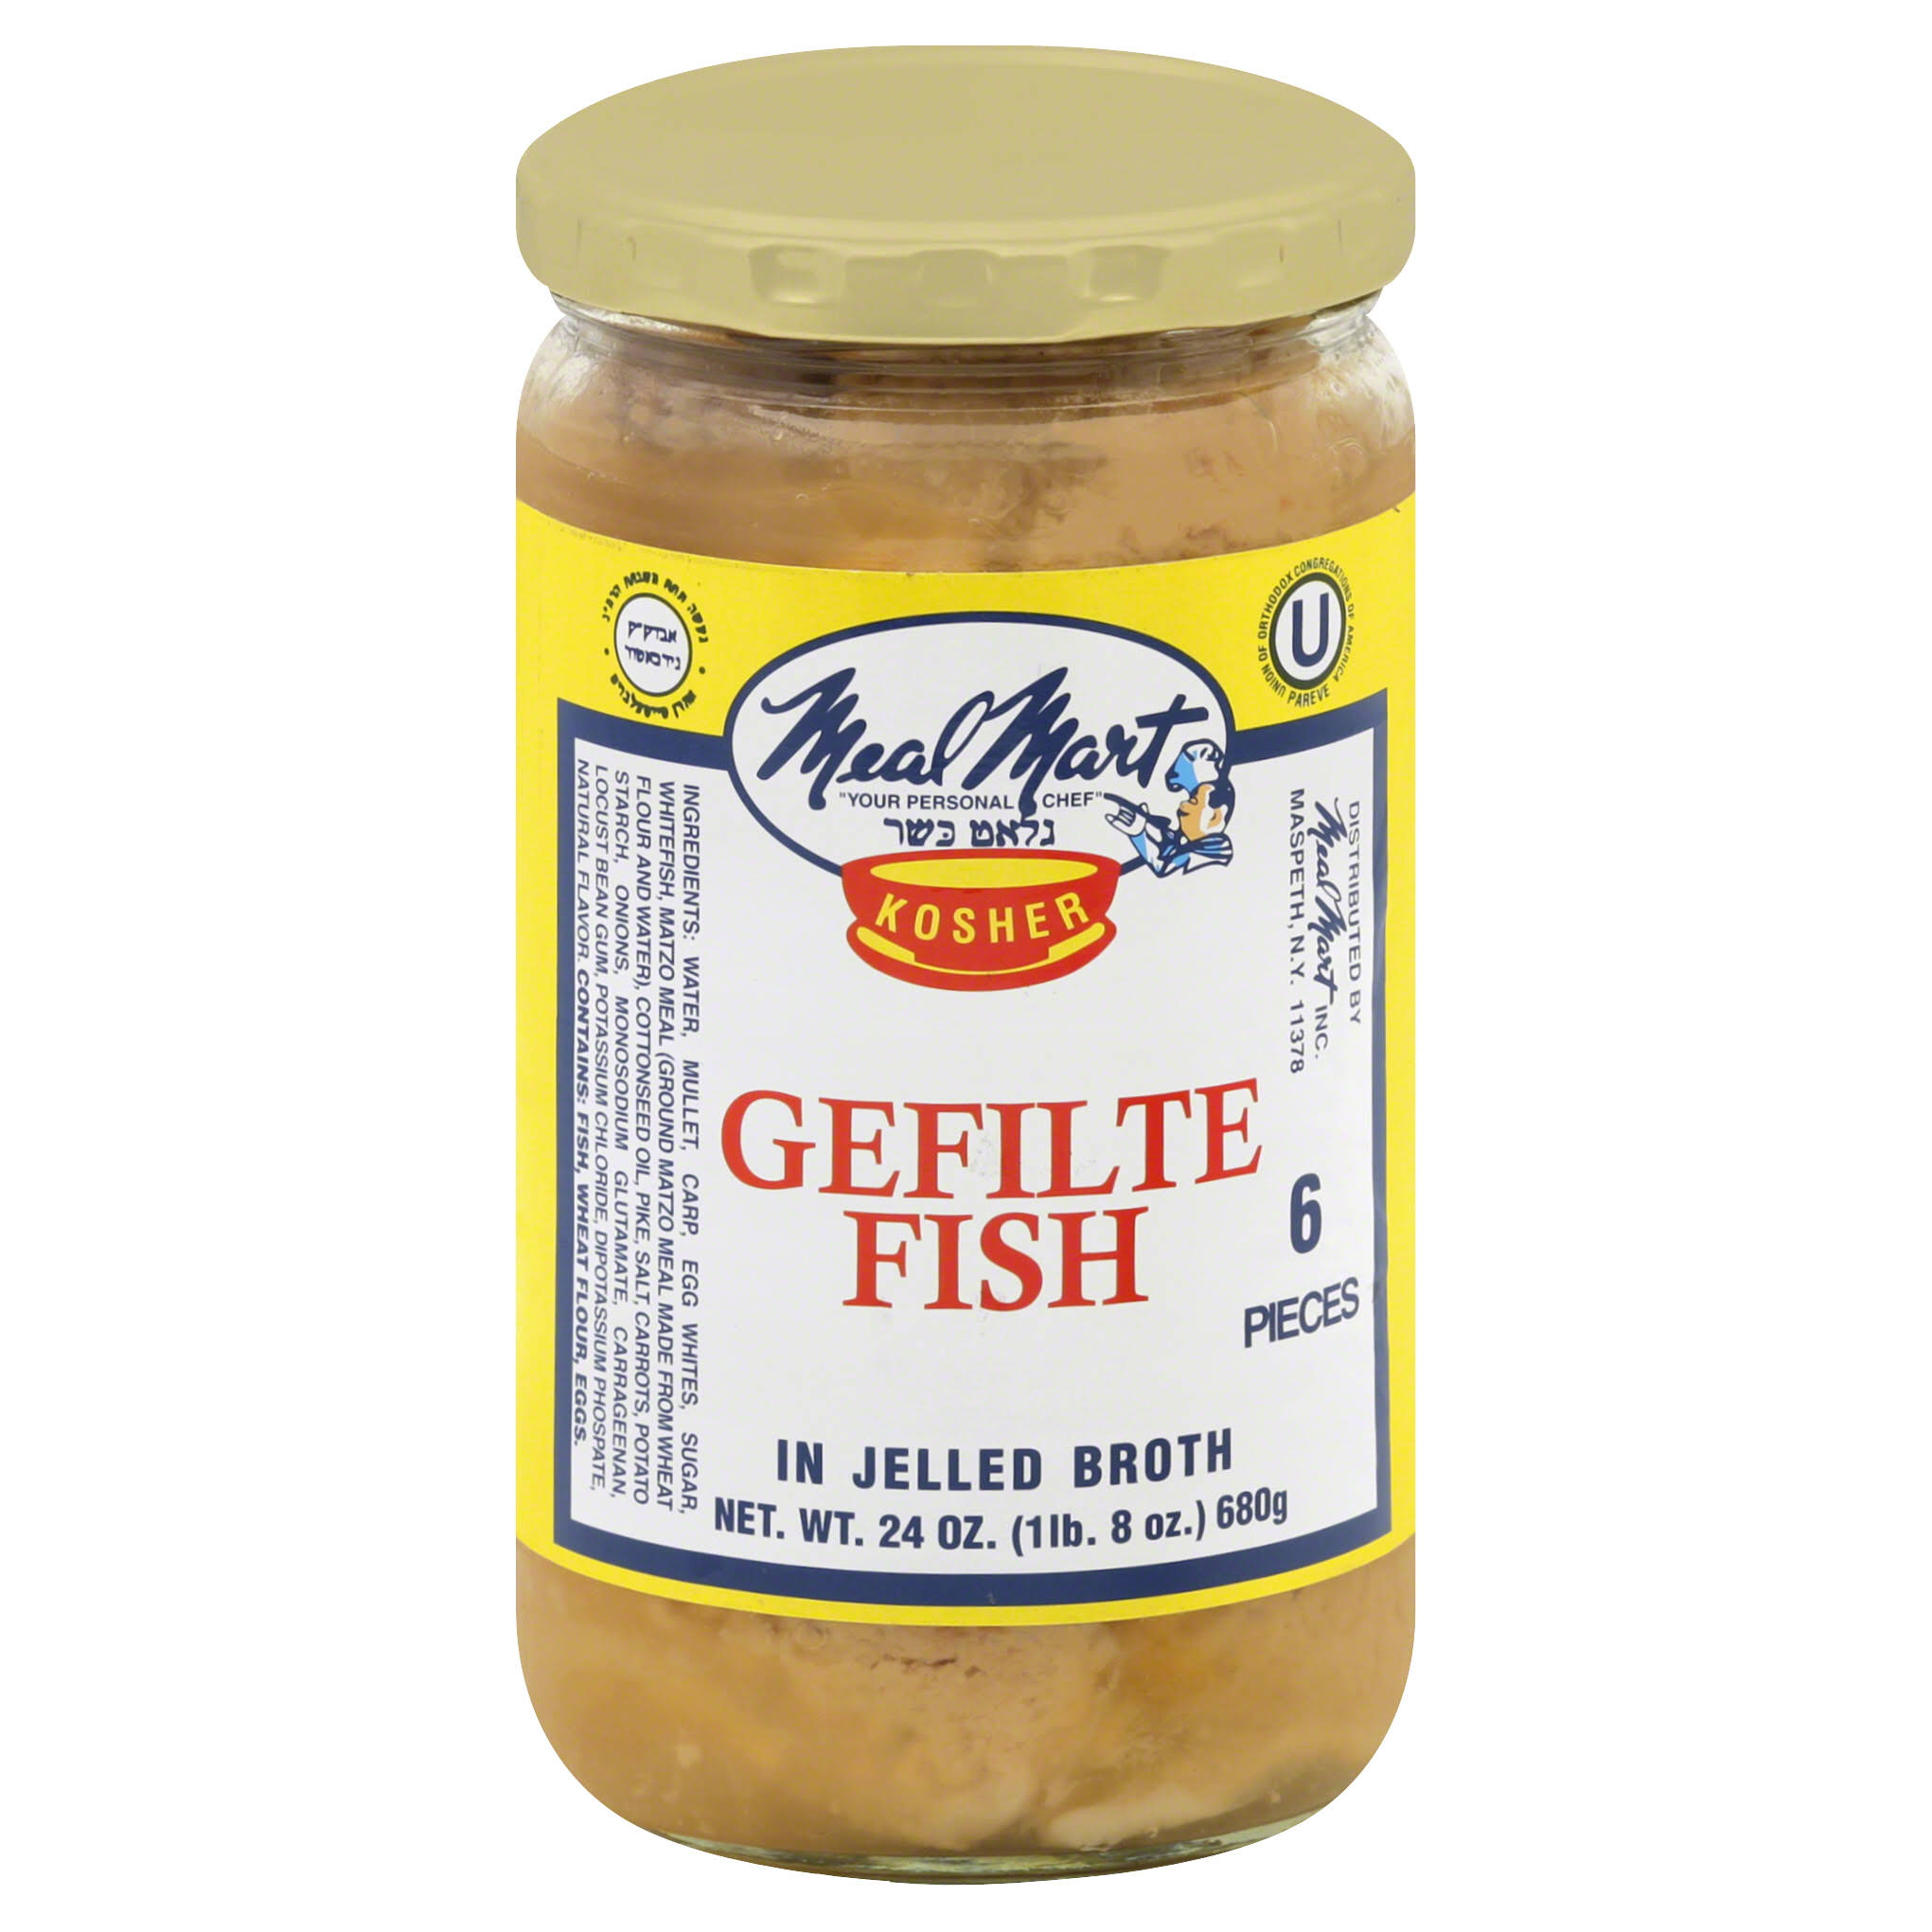 Mealmart Gefilte Fish Jar - 24oz